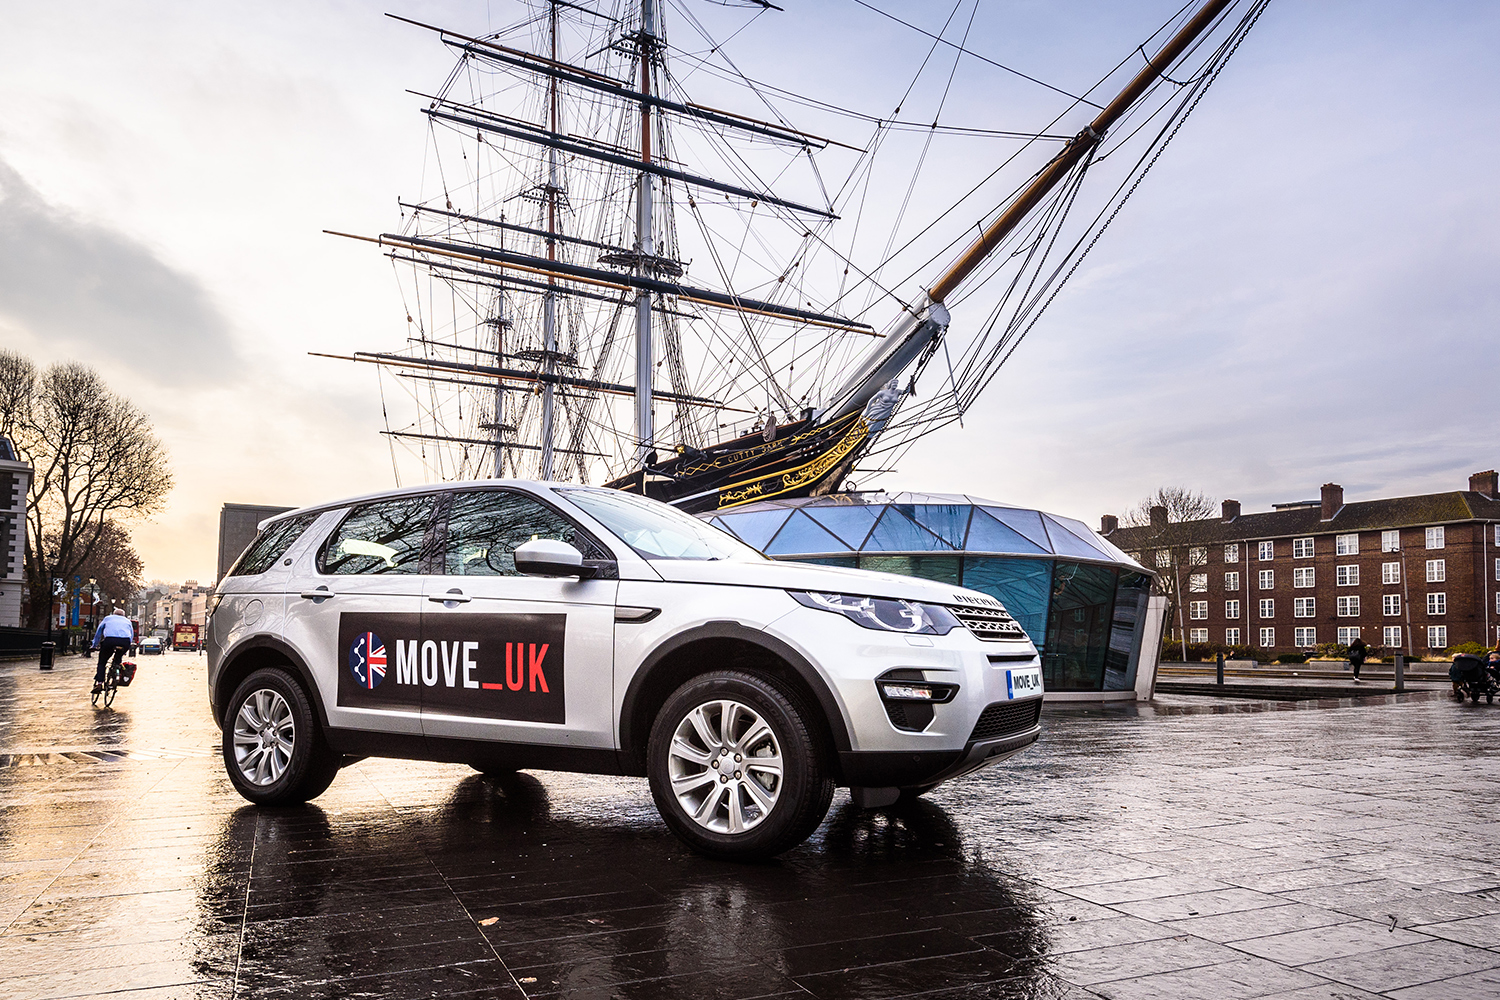 MOVE_UK – Phase 2: Automated Driving Data Analysis Report